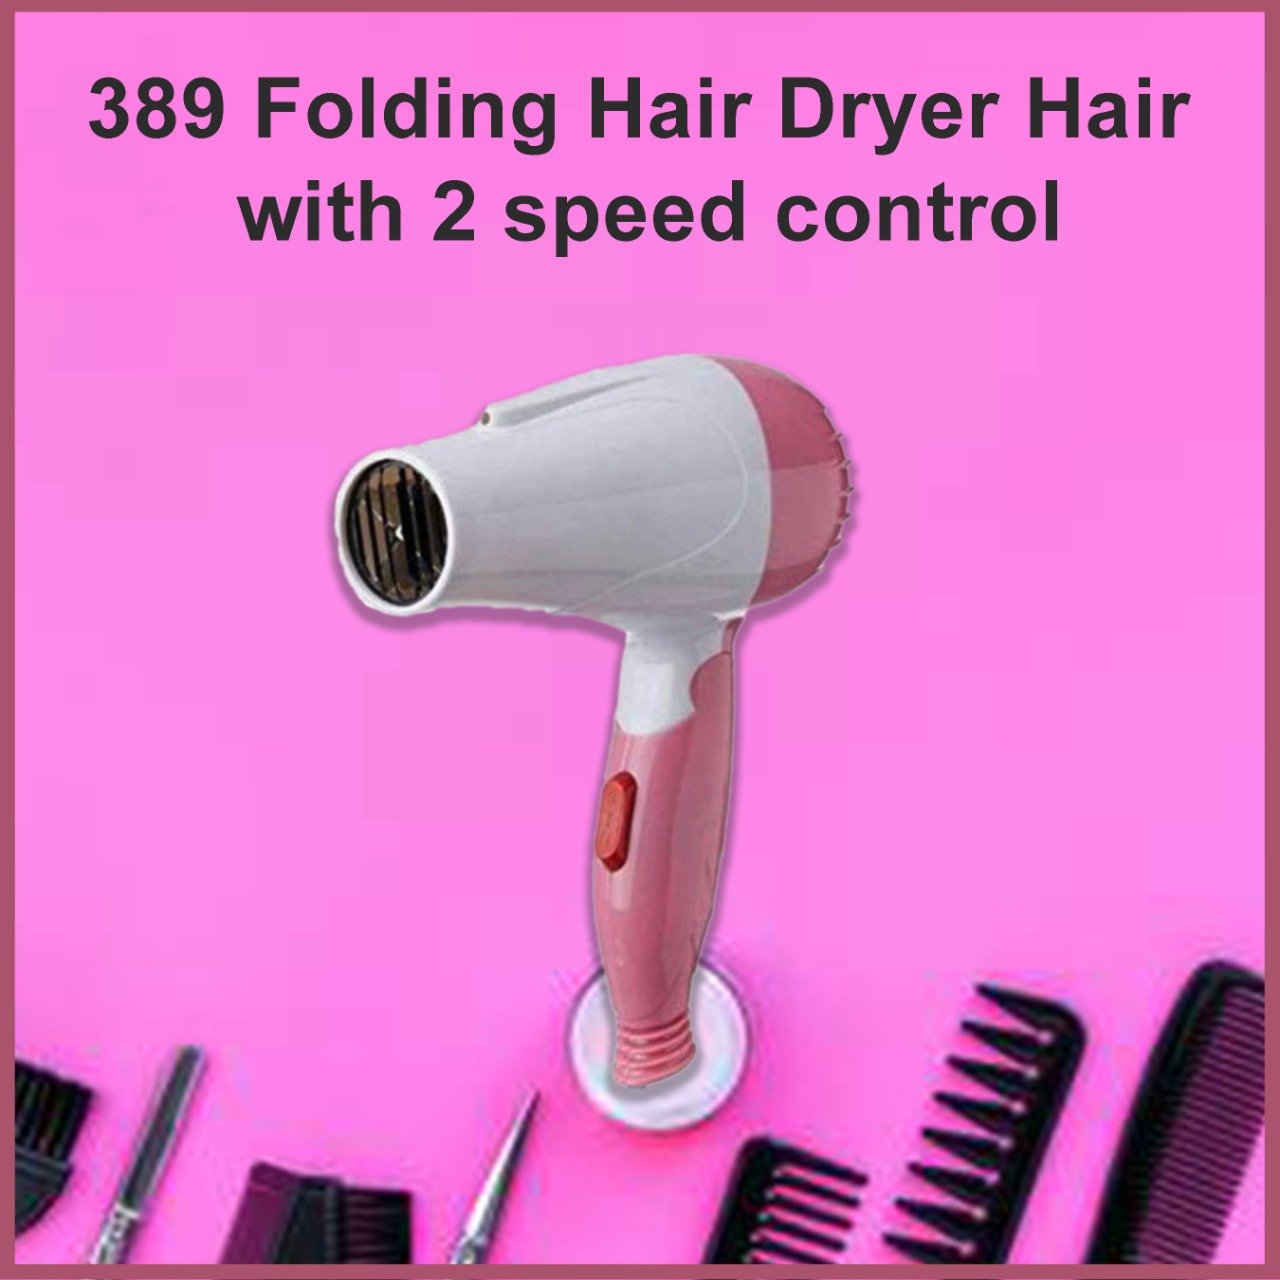 389 Folding Hair Dryer Hair with 2 speed control